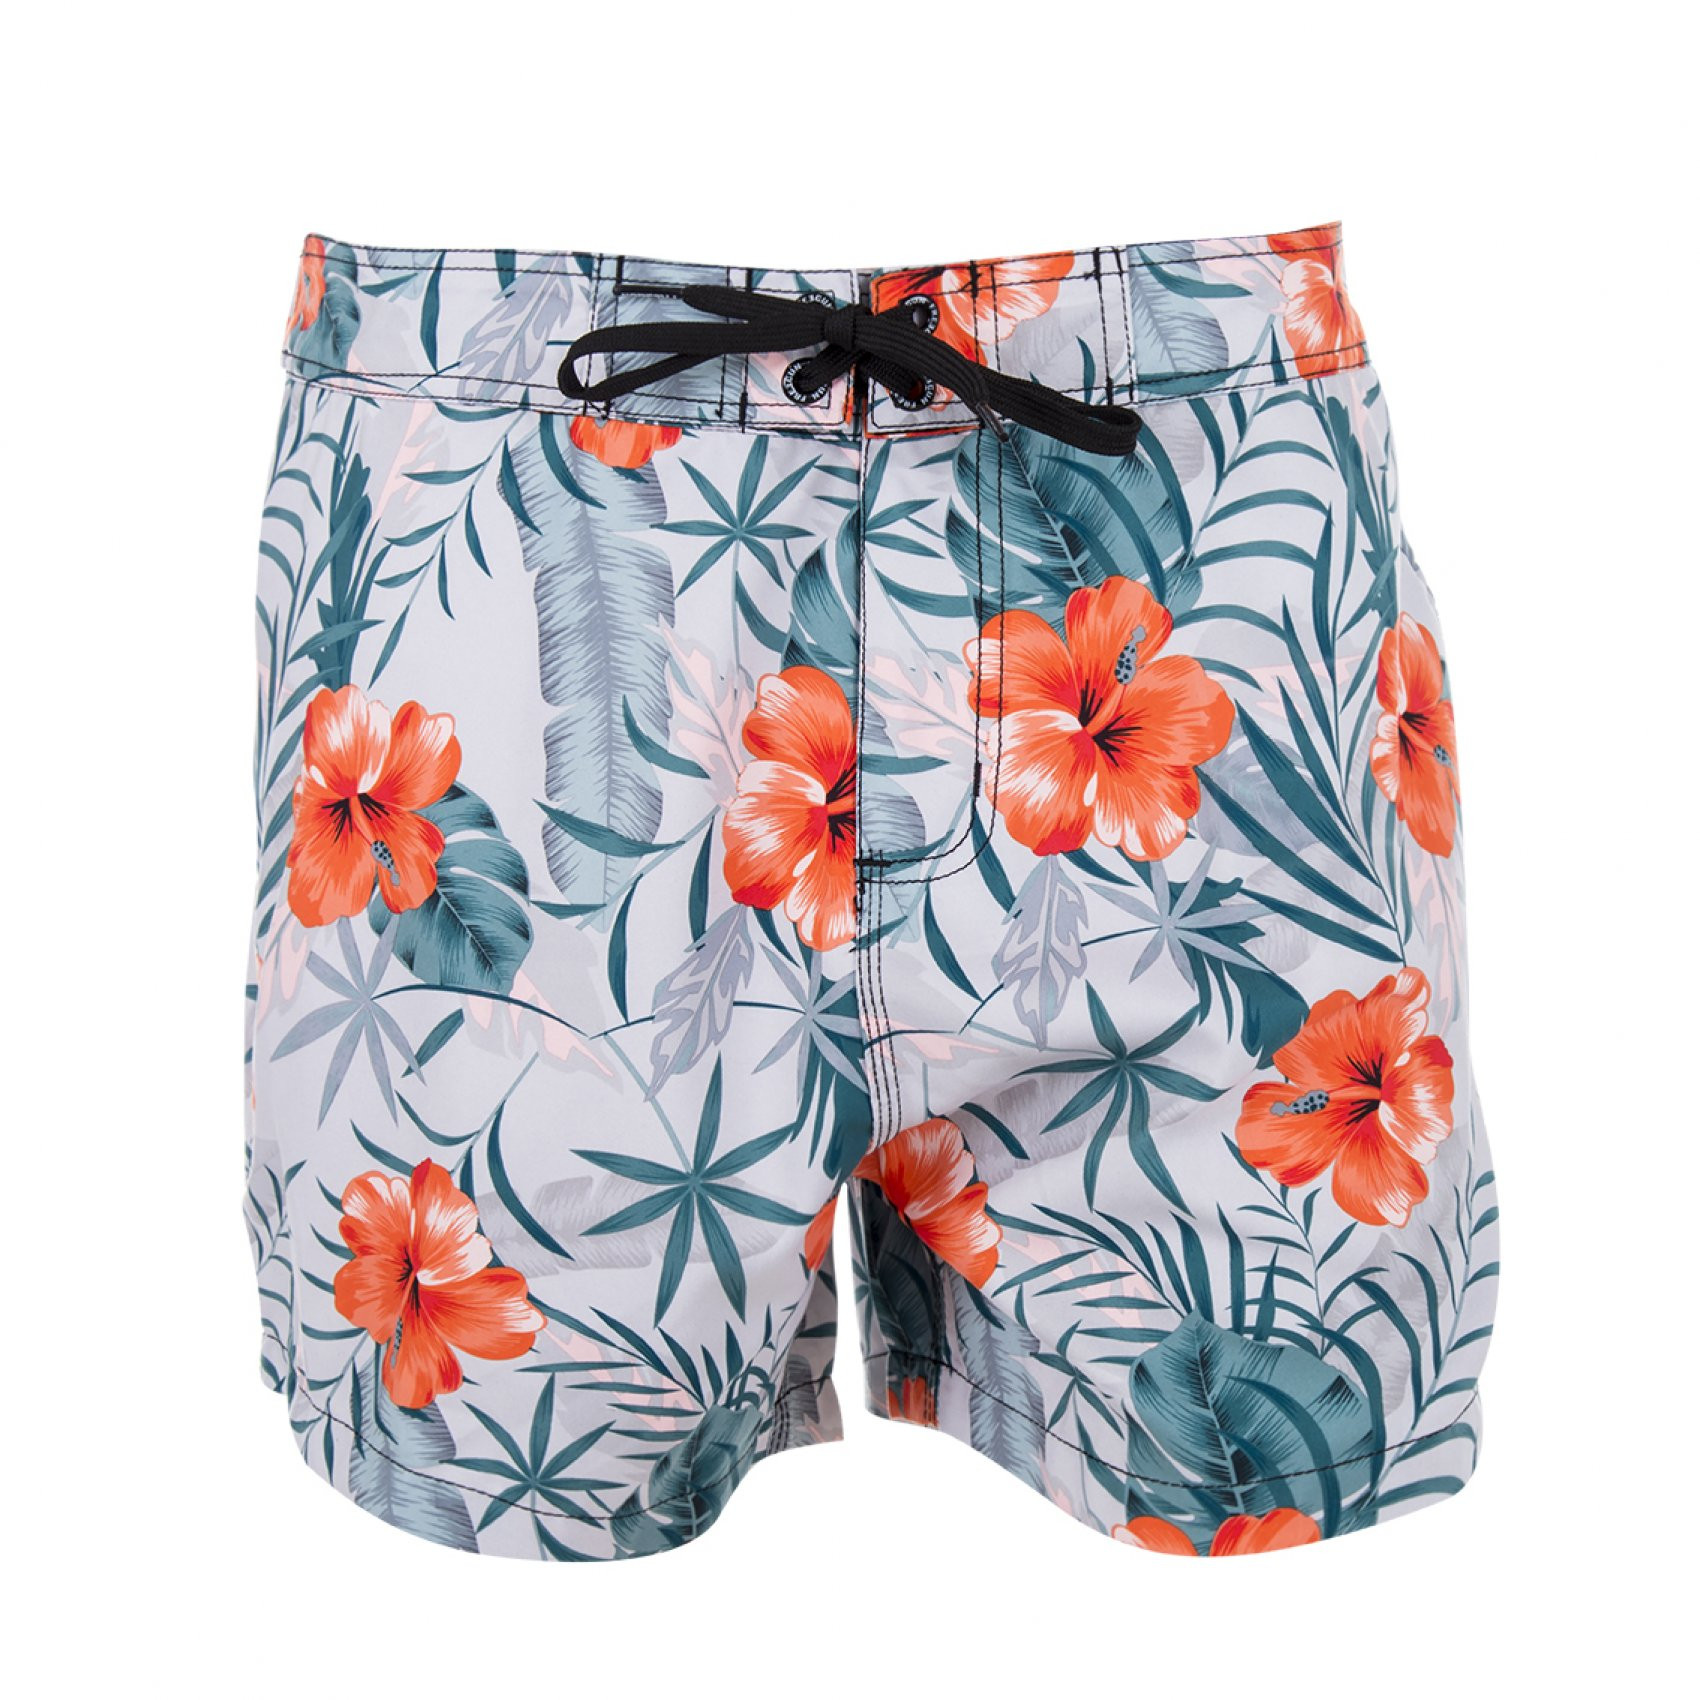 Boardshort court freegun homme - hawai (photo)